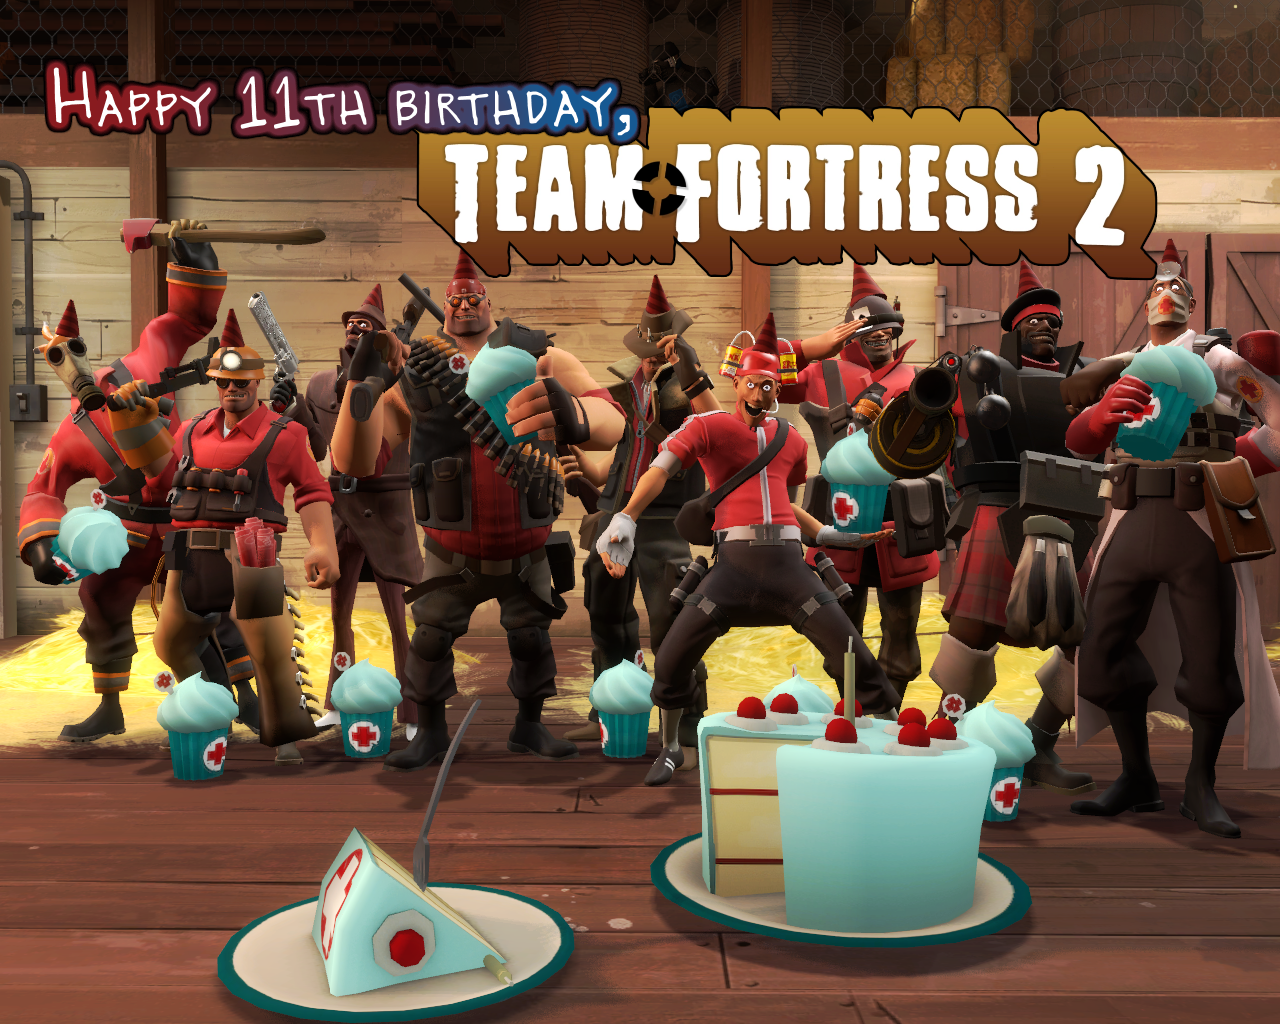 Happy 11th Birthday, Team Fortress 2! by HeroWolfMod